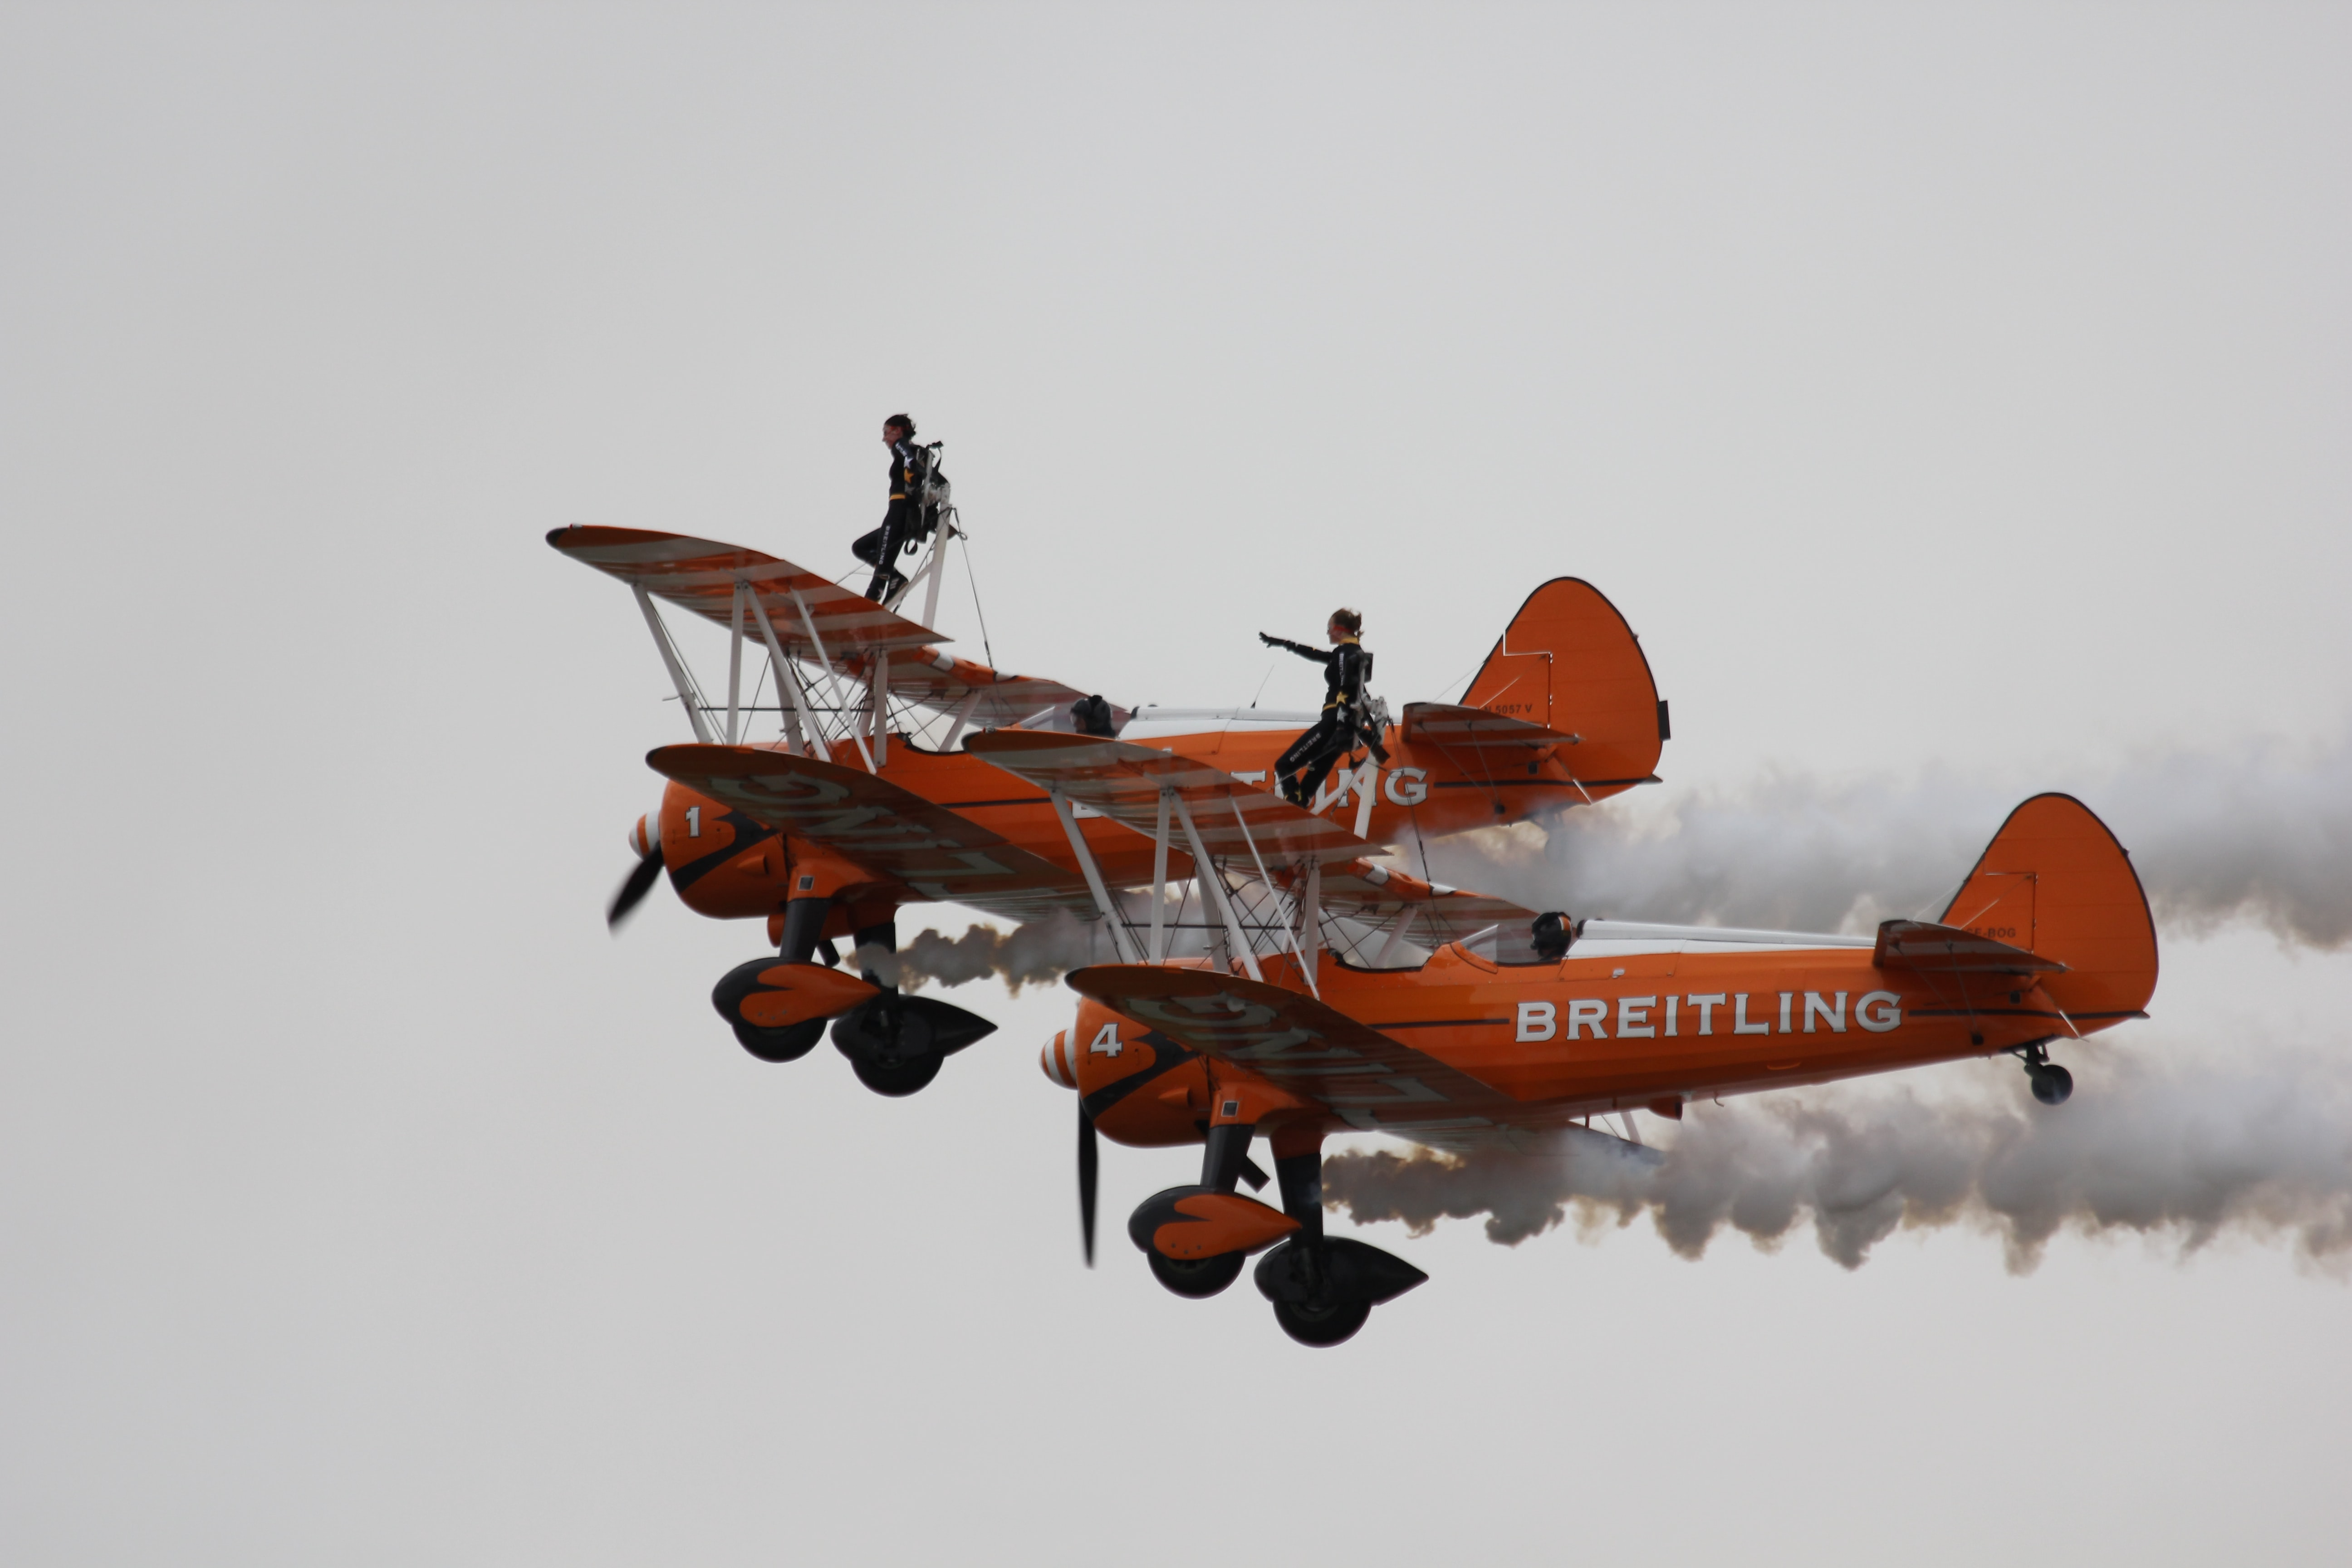 two orange-and-white Breitling airborne